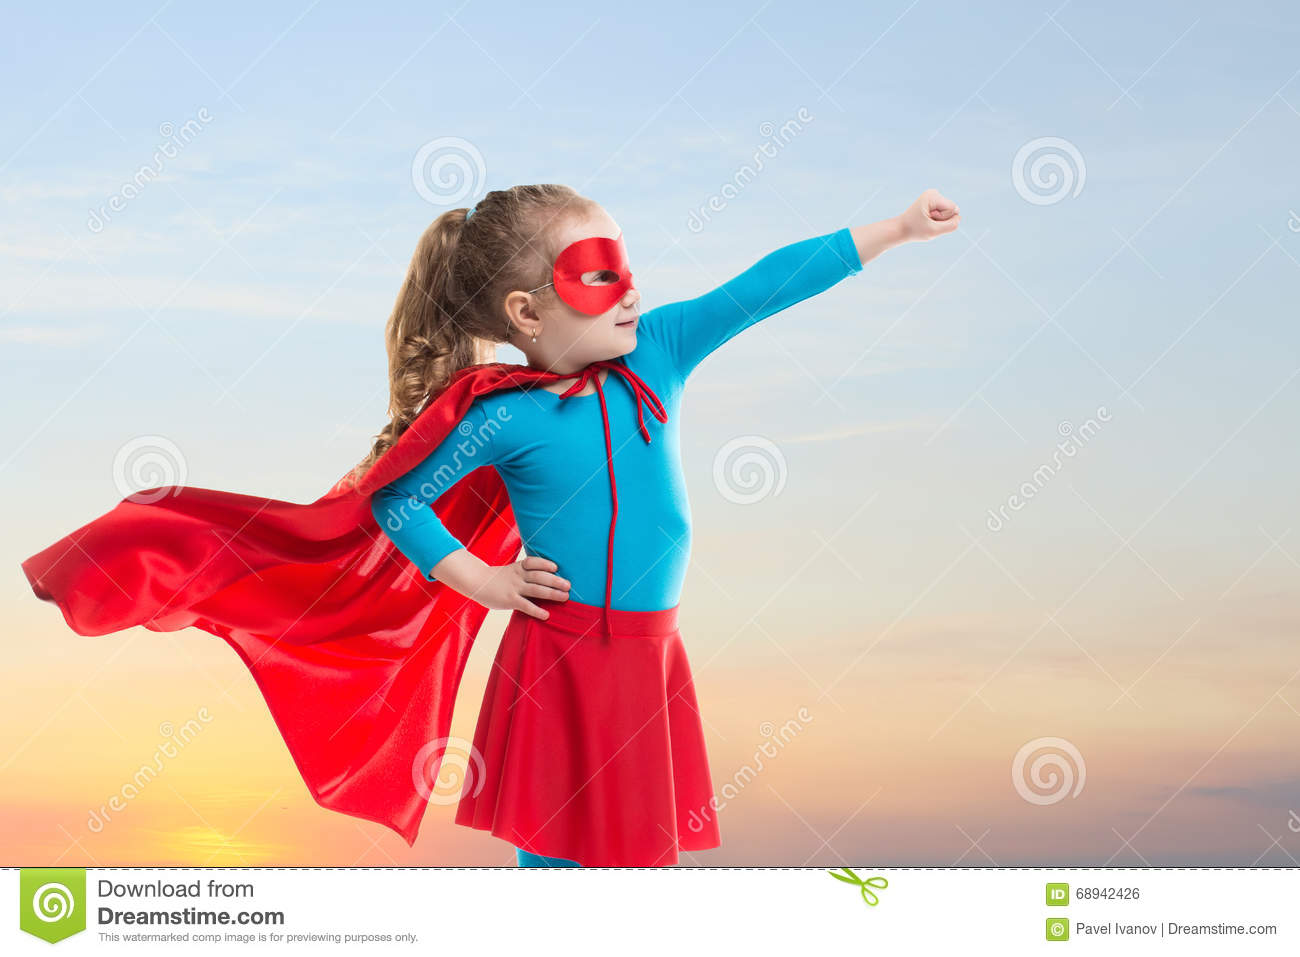 Little girl super hero